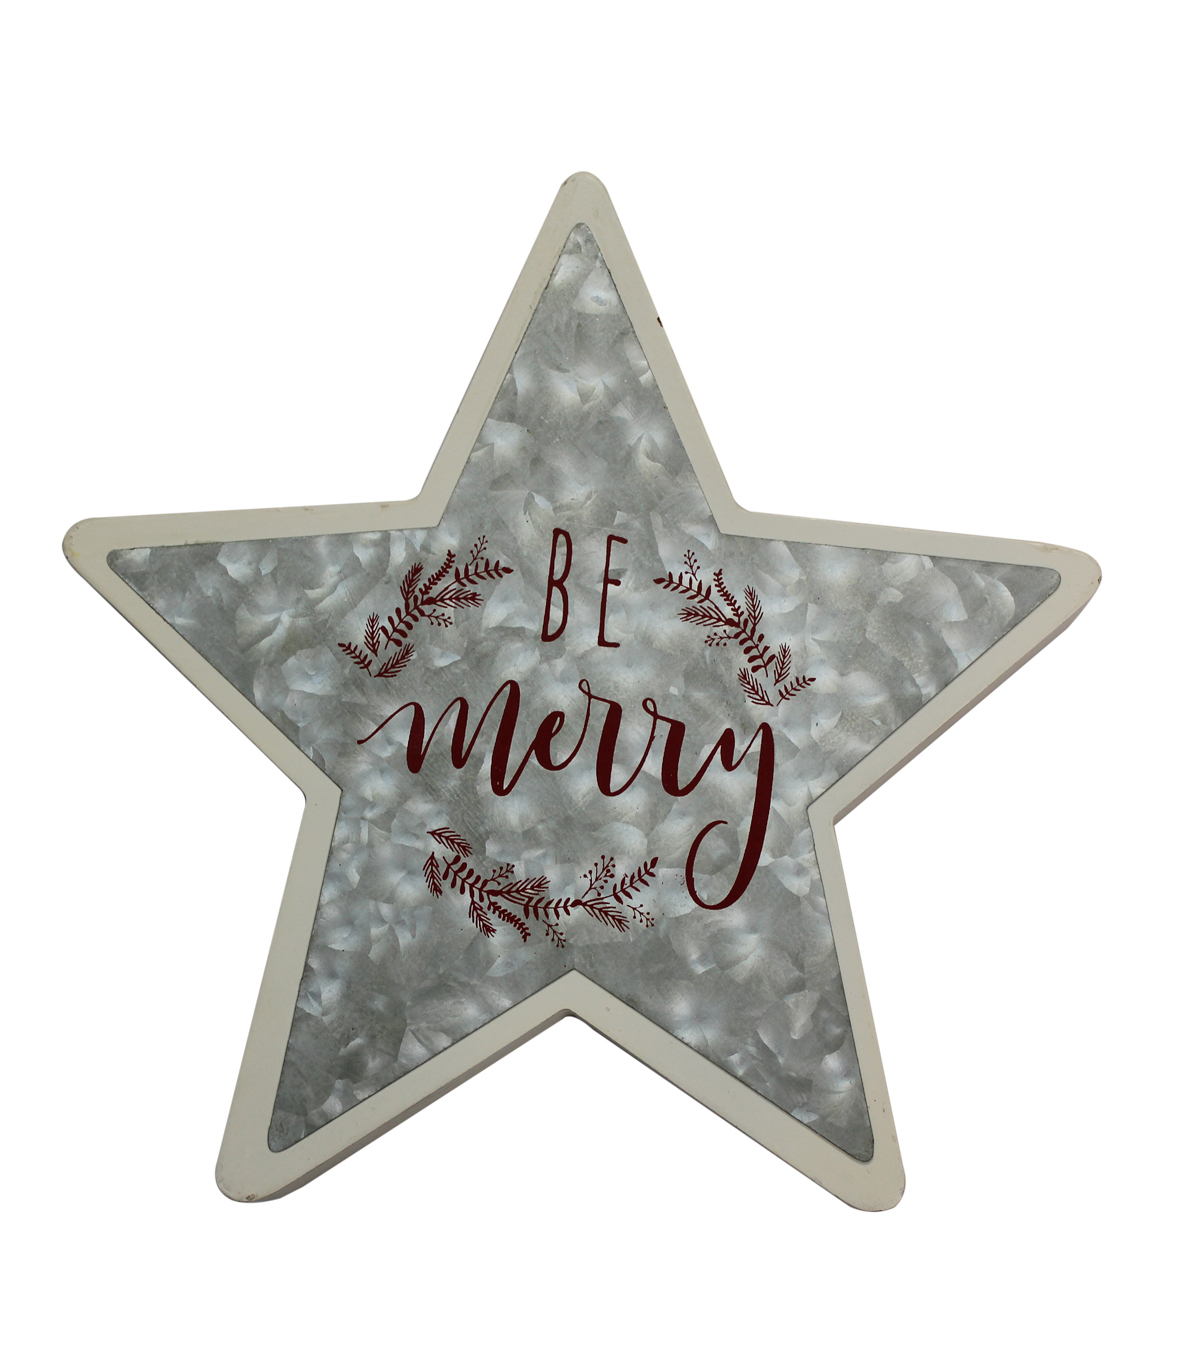 Maker\u0027s Holiday Christmas Star Shaped Decor-Be Merry